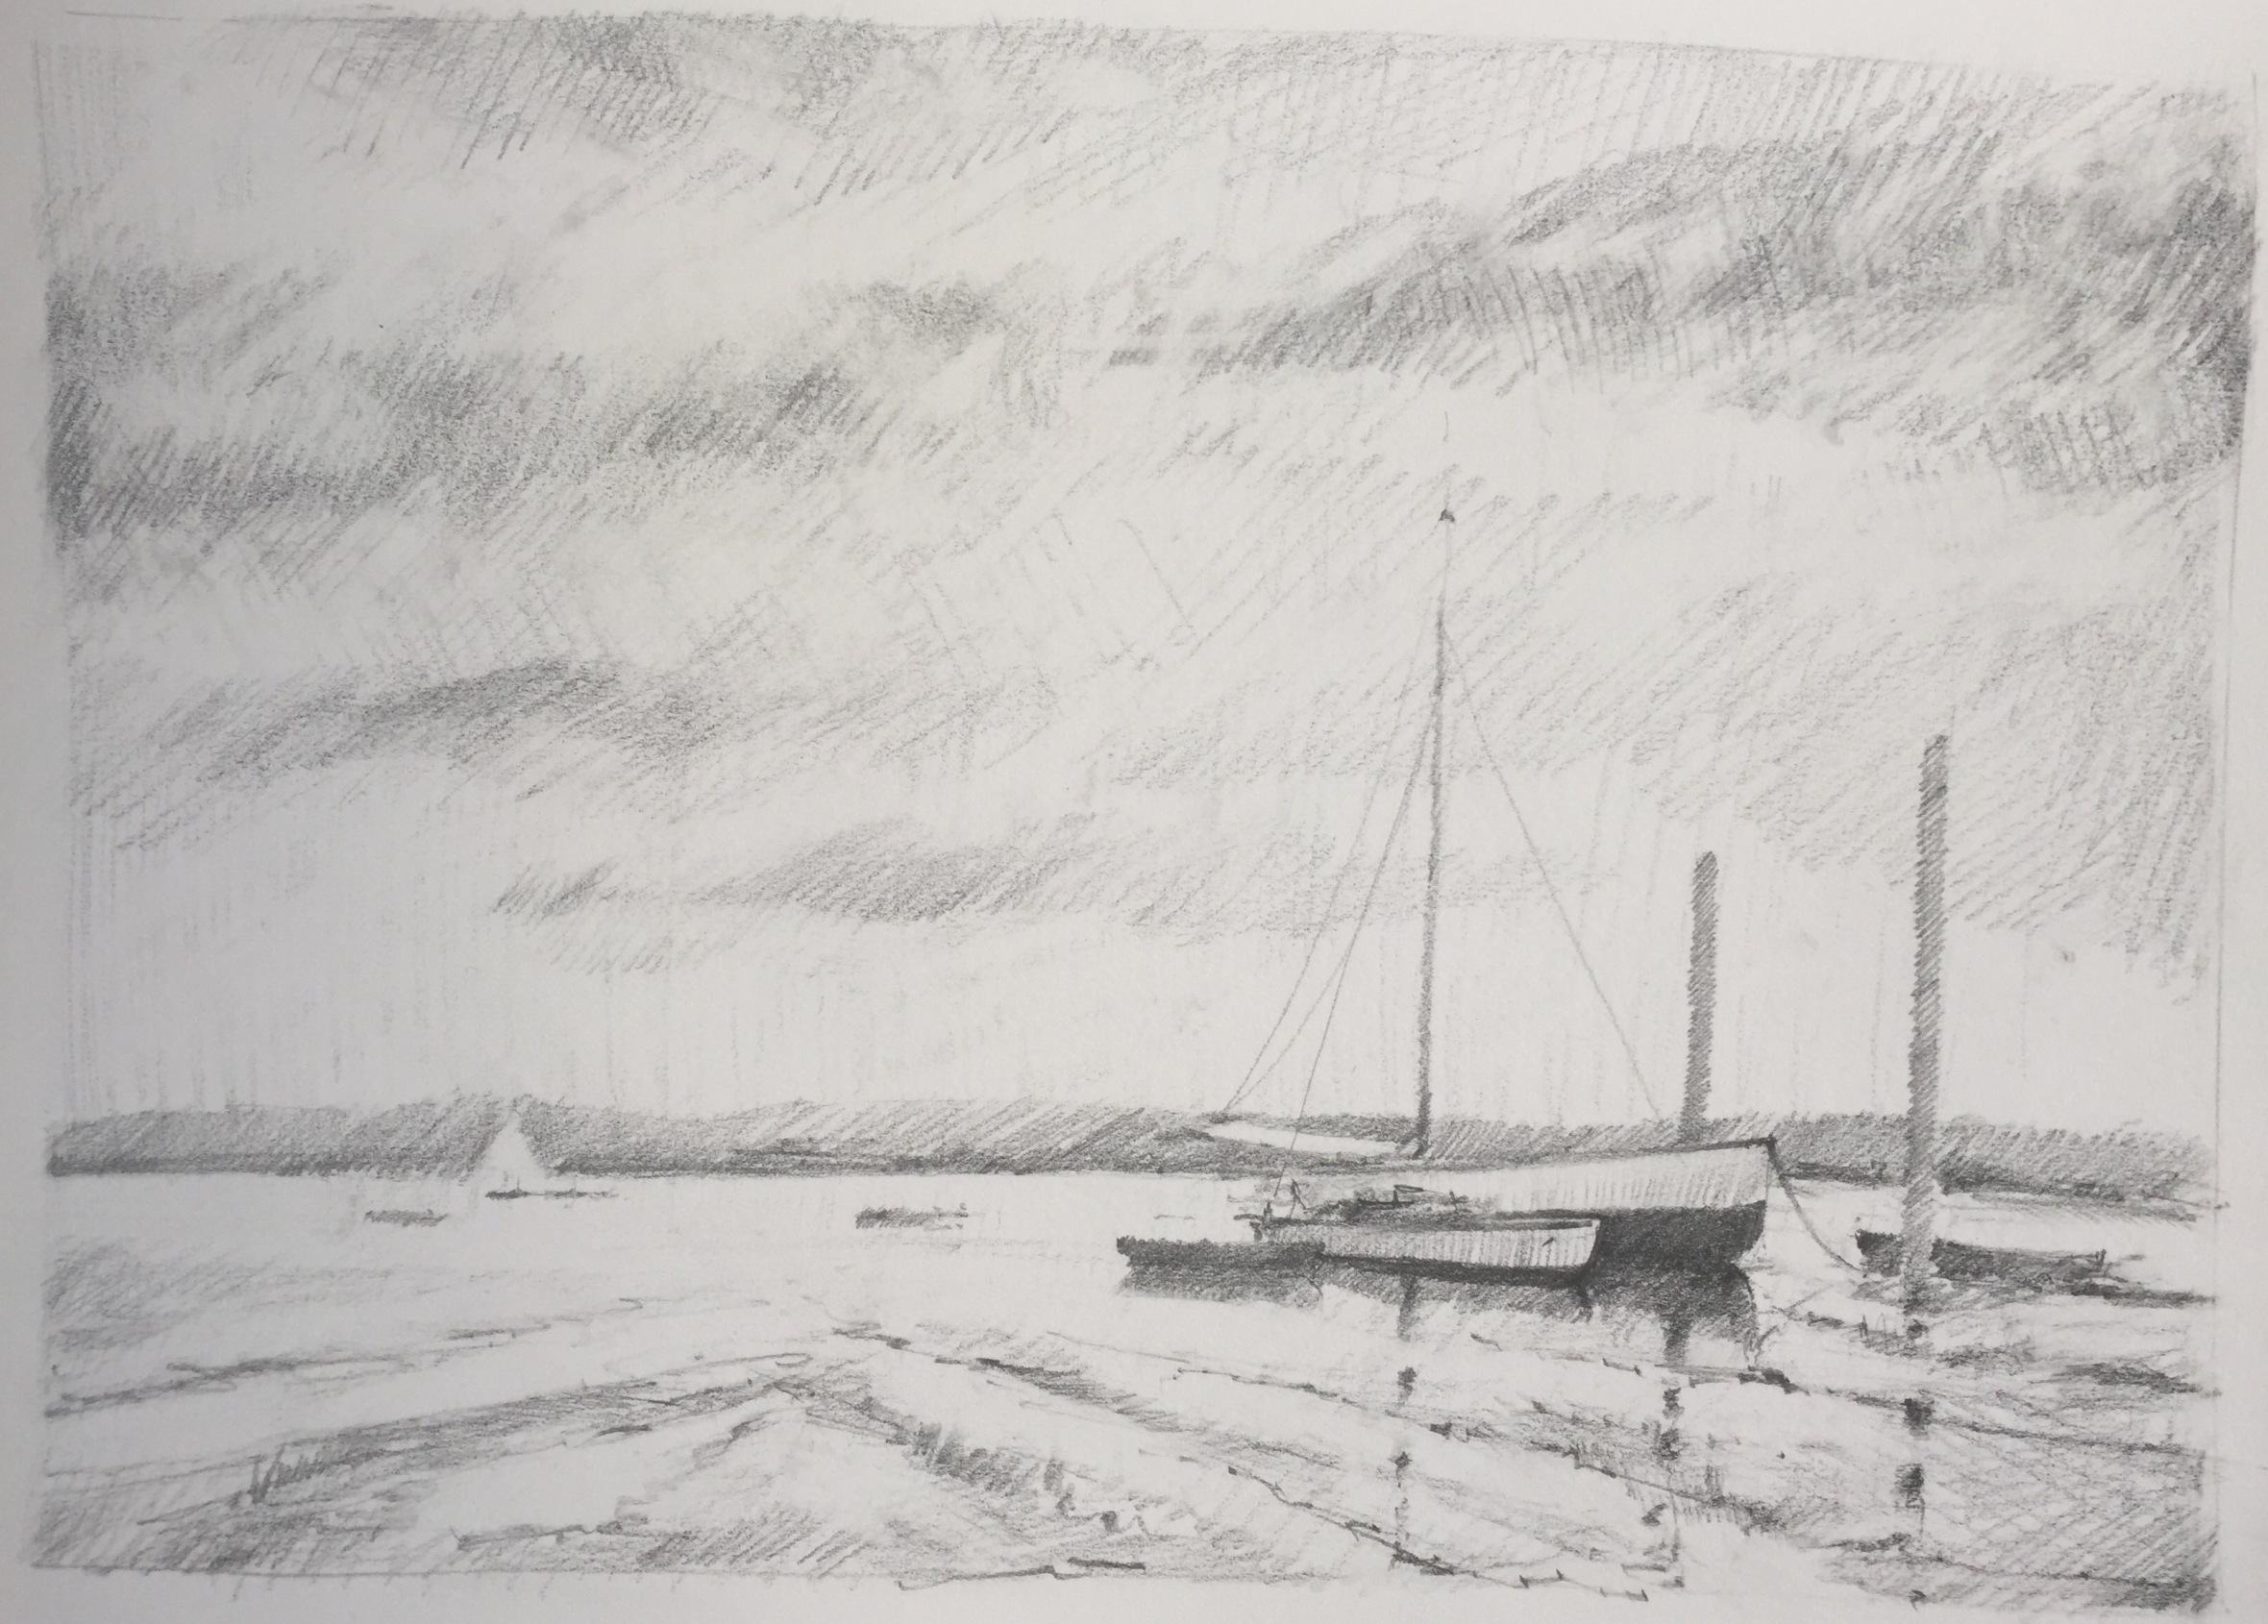 Pencil sketch based on Edward Seago's oil painting, 'End of the Hard, Pin Mill'